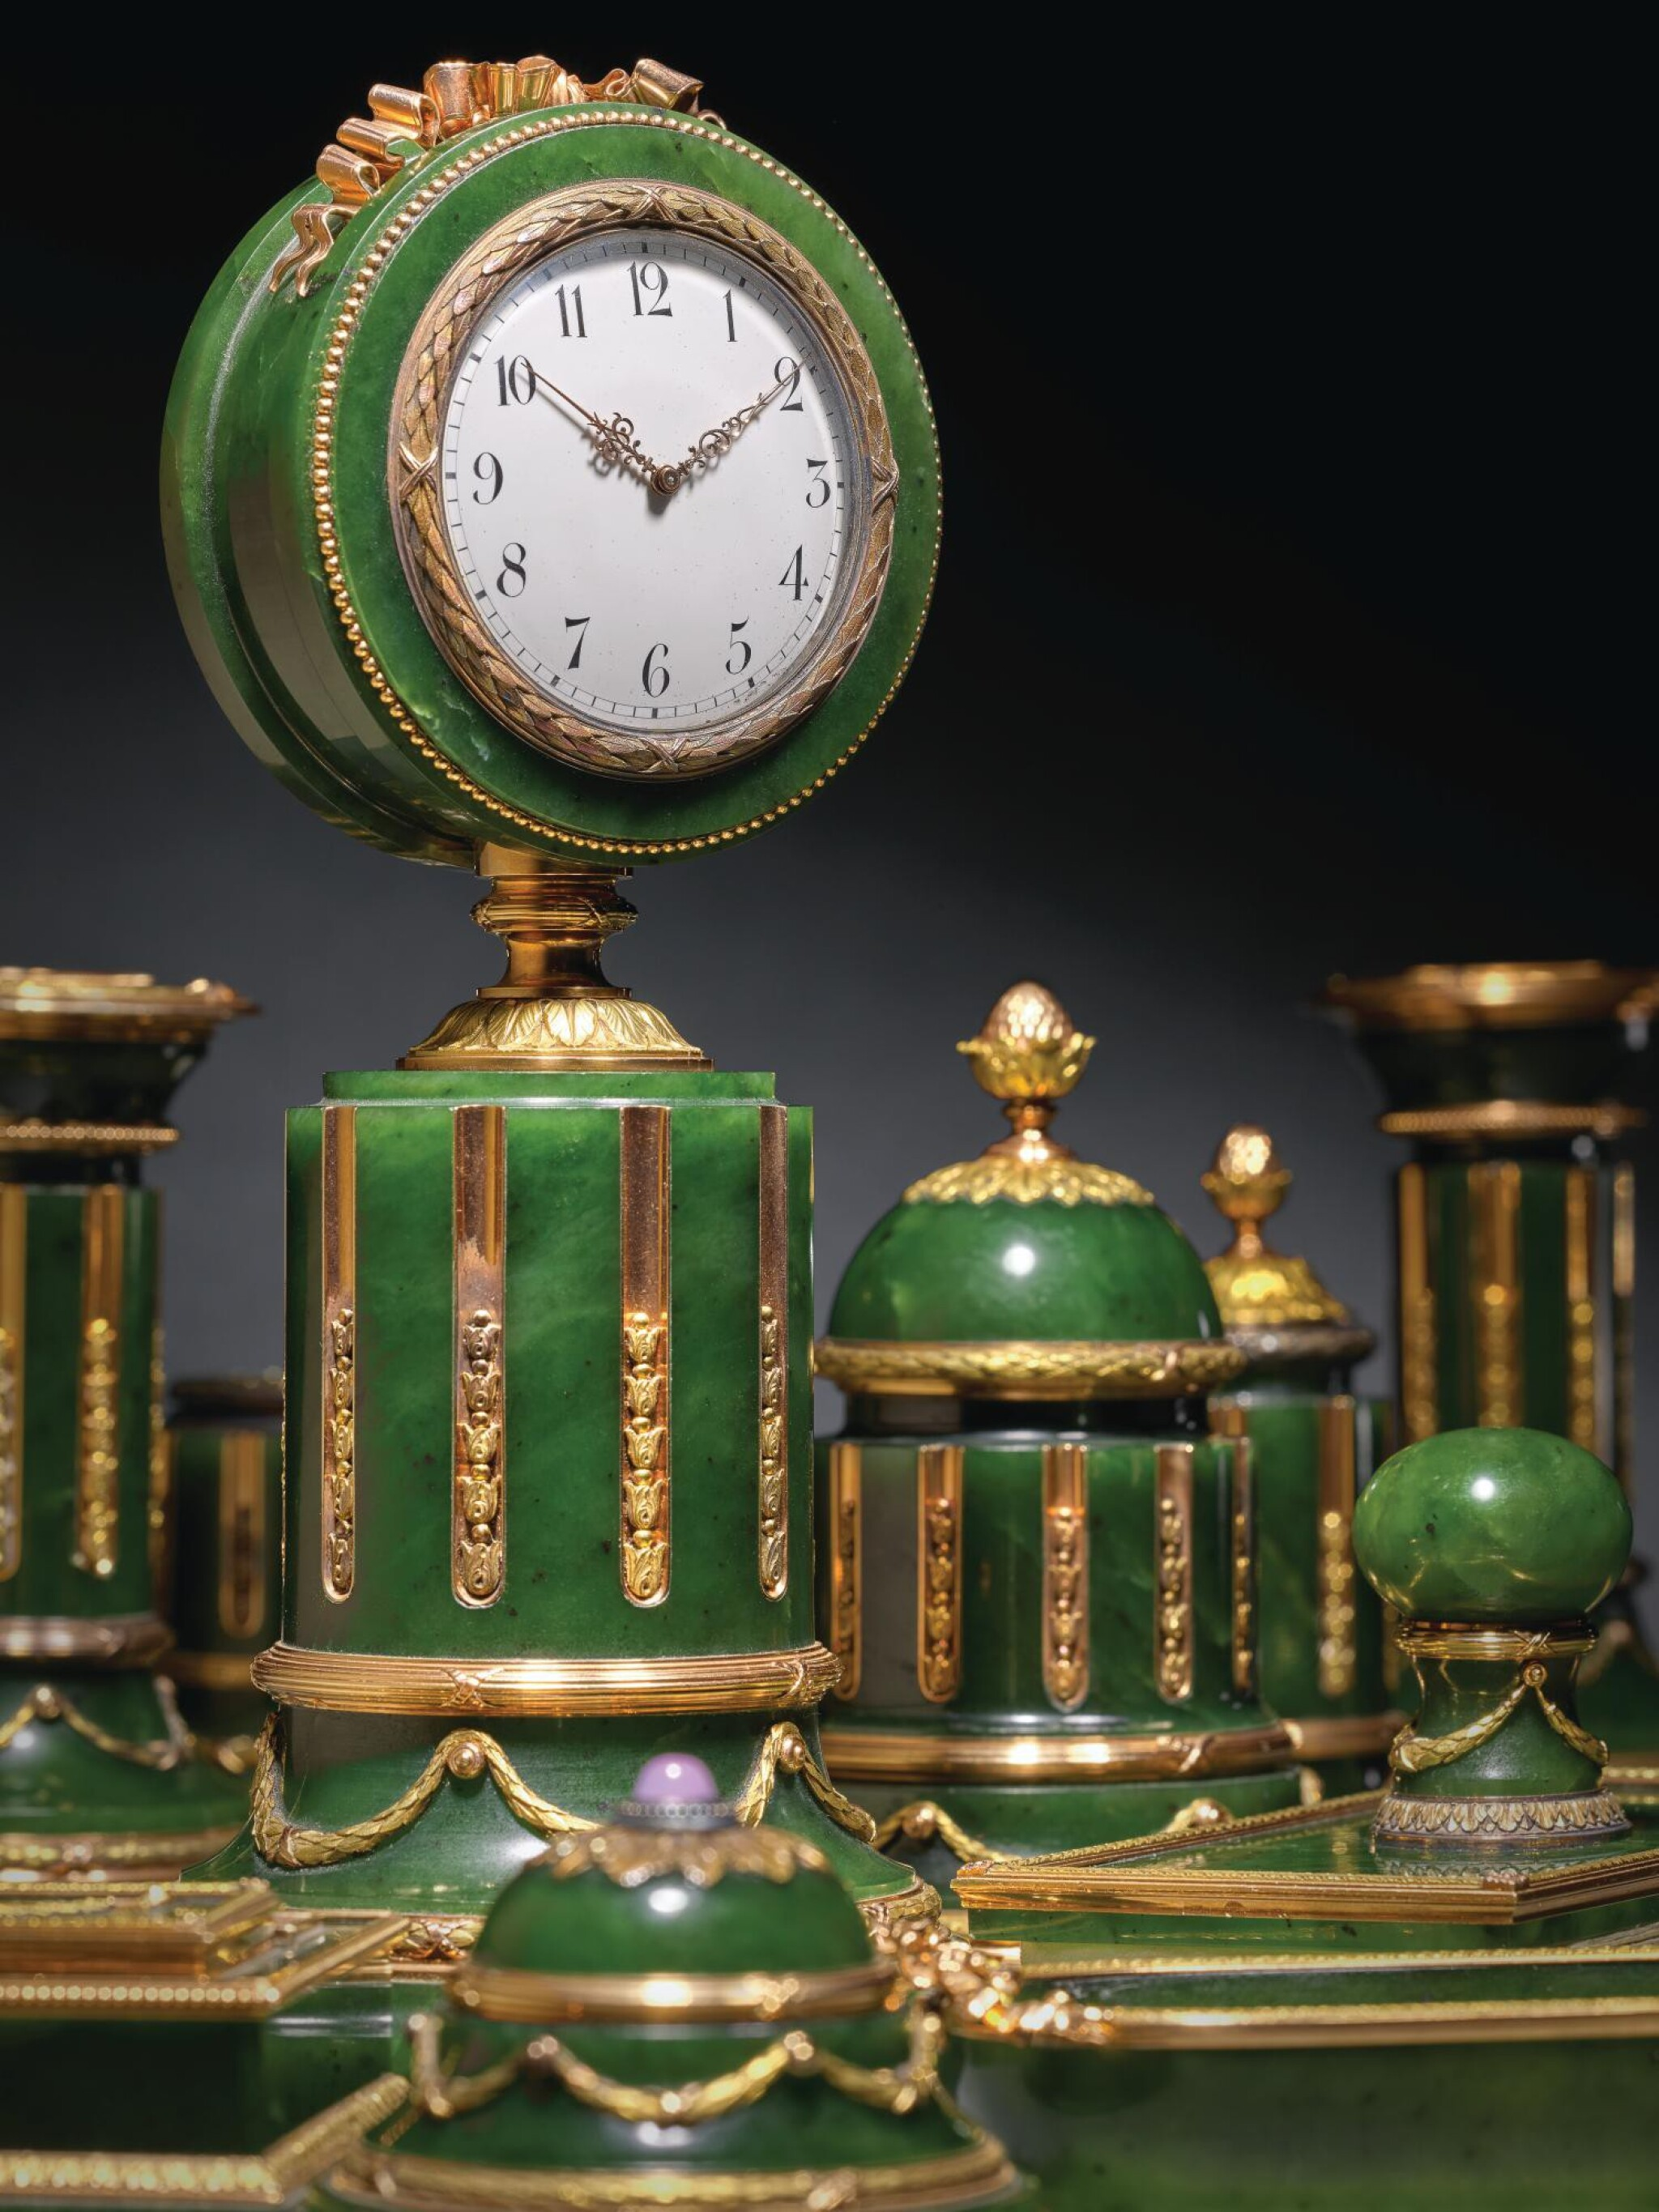 View full screen - View 1 of Lot 34. A Highly Important Fabergé Varicolored Gold-Mounted Nephrite Desk Set, Workmaster Henrik Wigström, St Petersburg, 1903-1912.